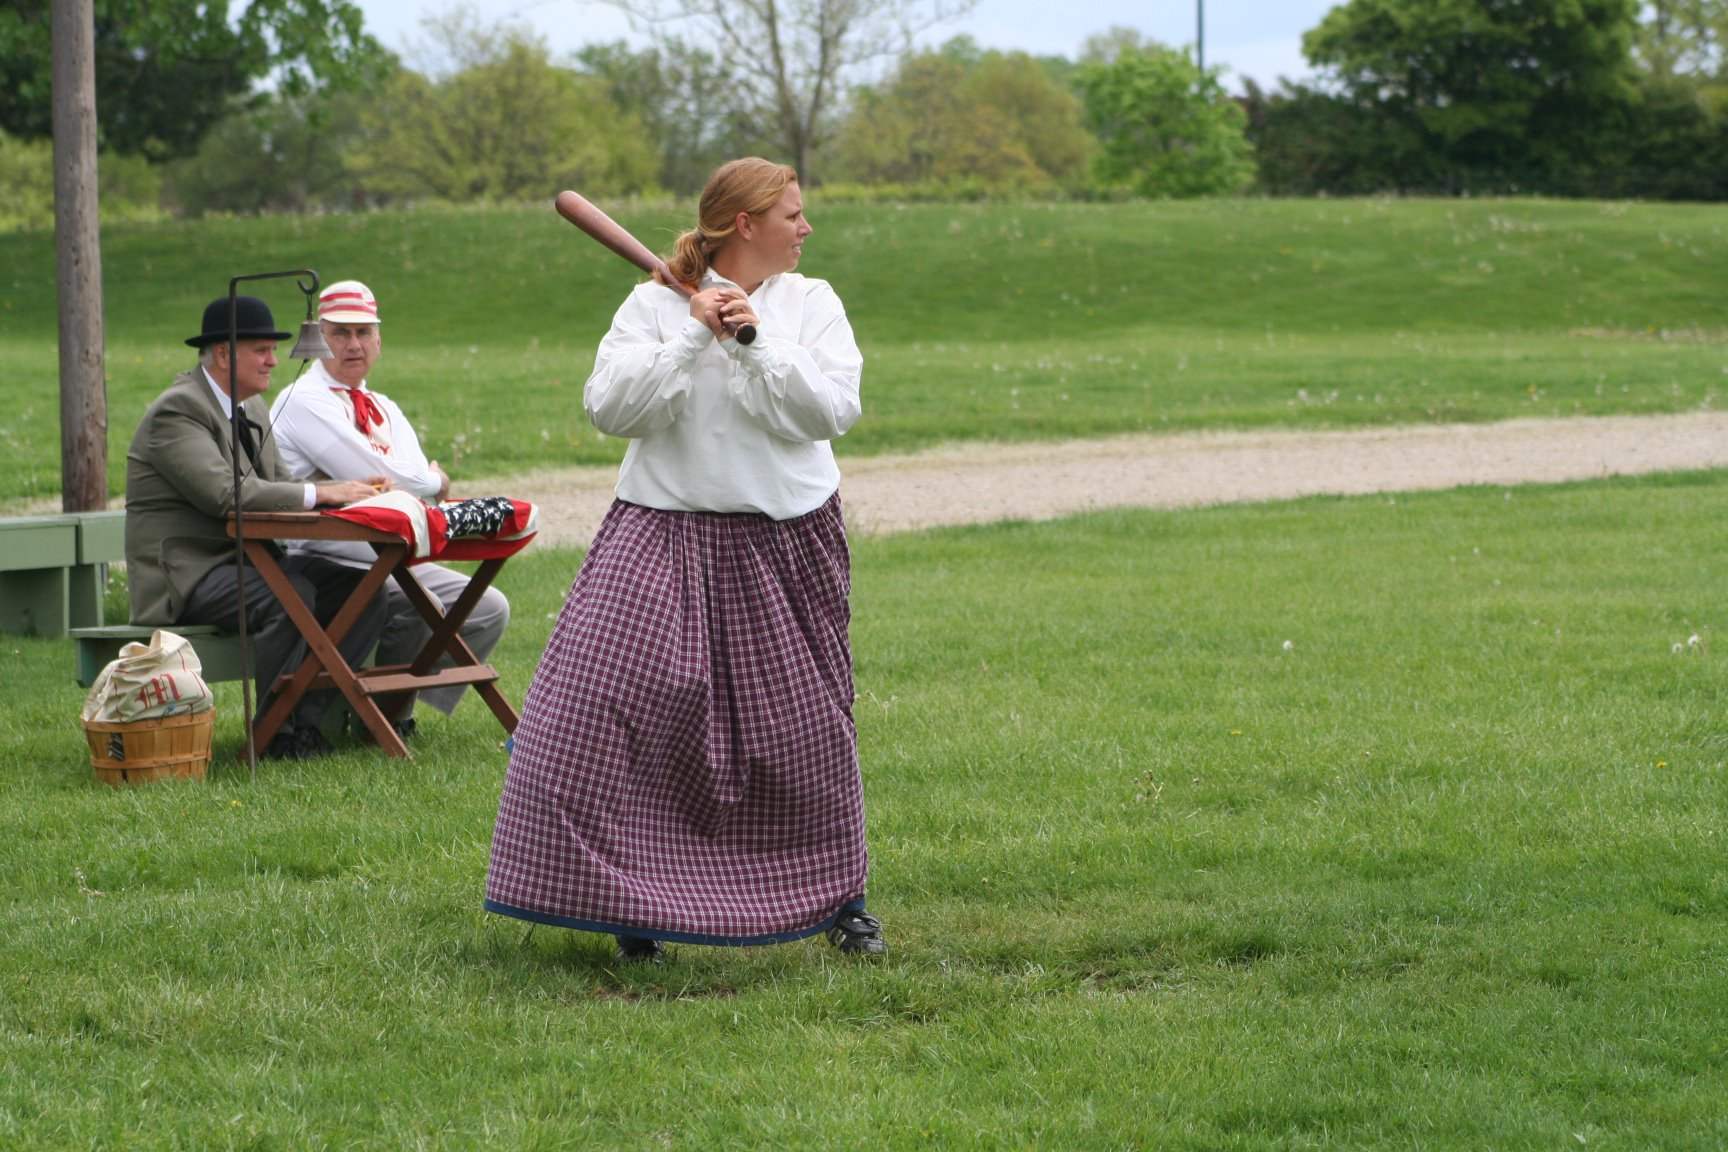 Ohio Village Lady Diamond batter with seated umpire looking on. The Lady Diamonds are an all-female team.